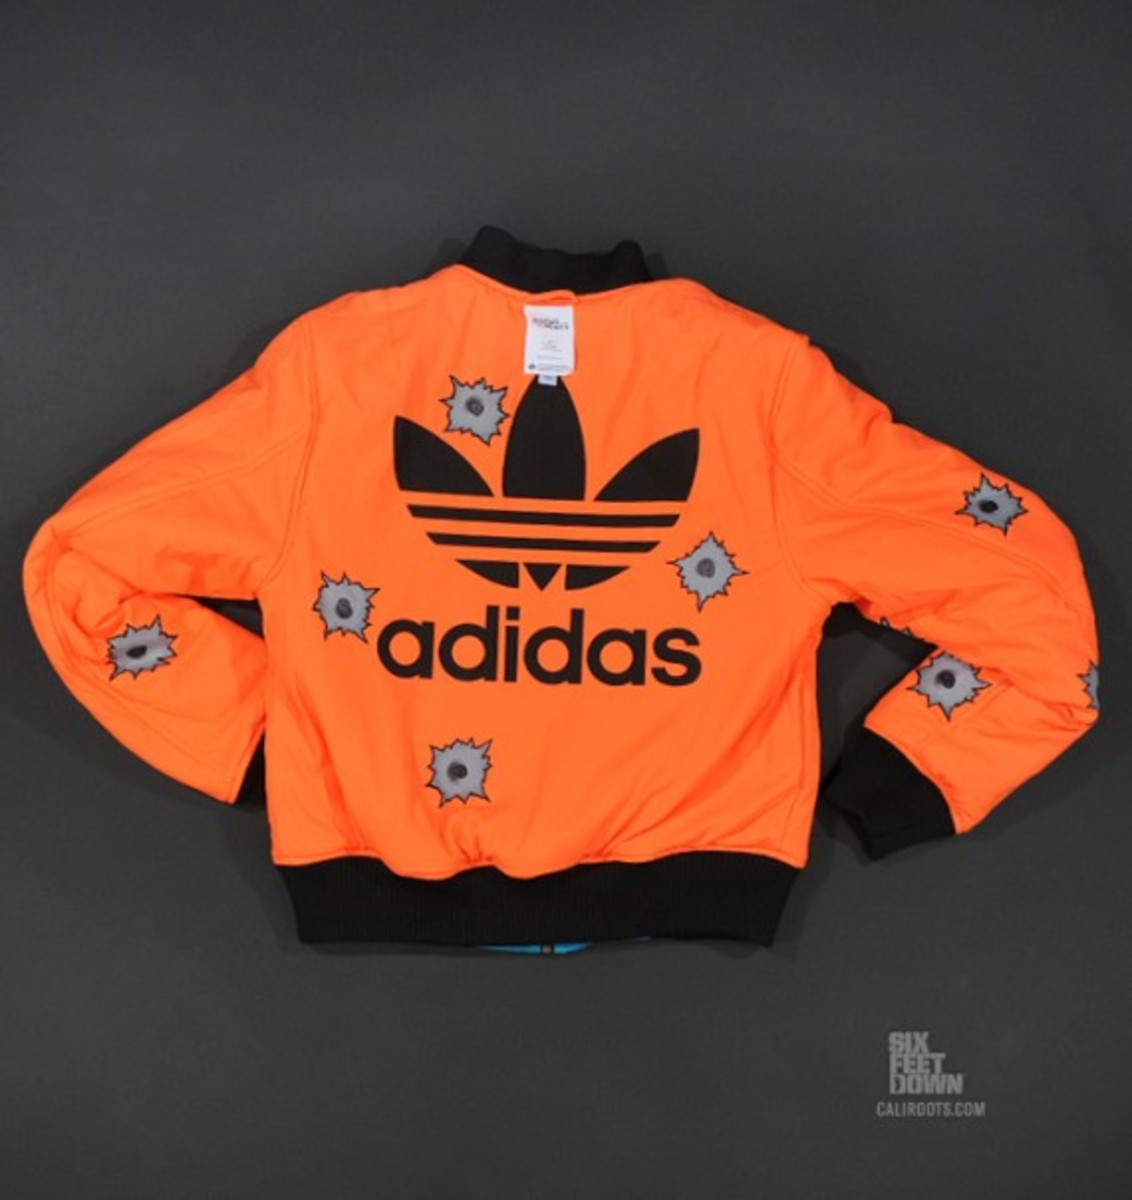 adidas-originals-jeremy-scott-js-bullet-bomber-jacket-10